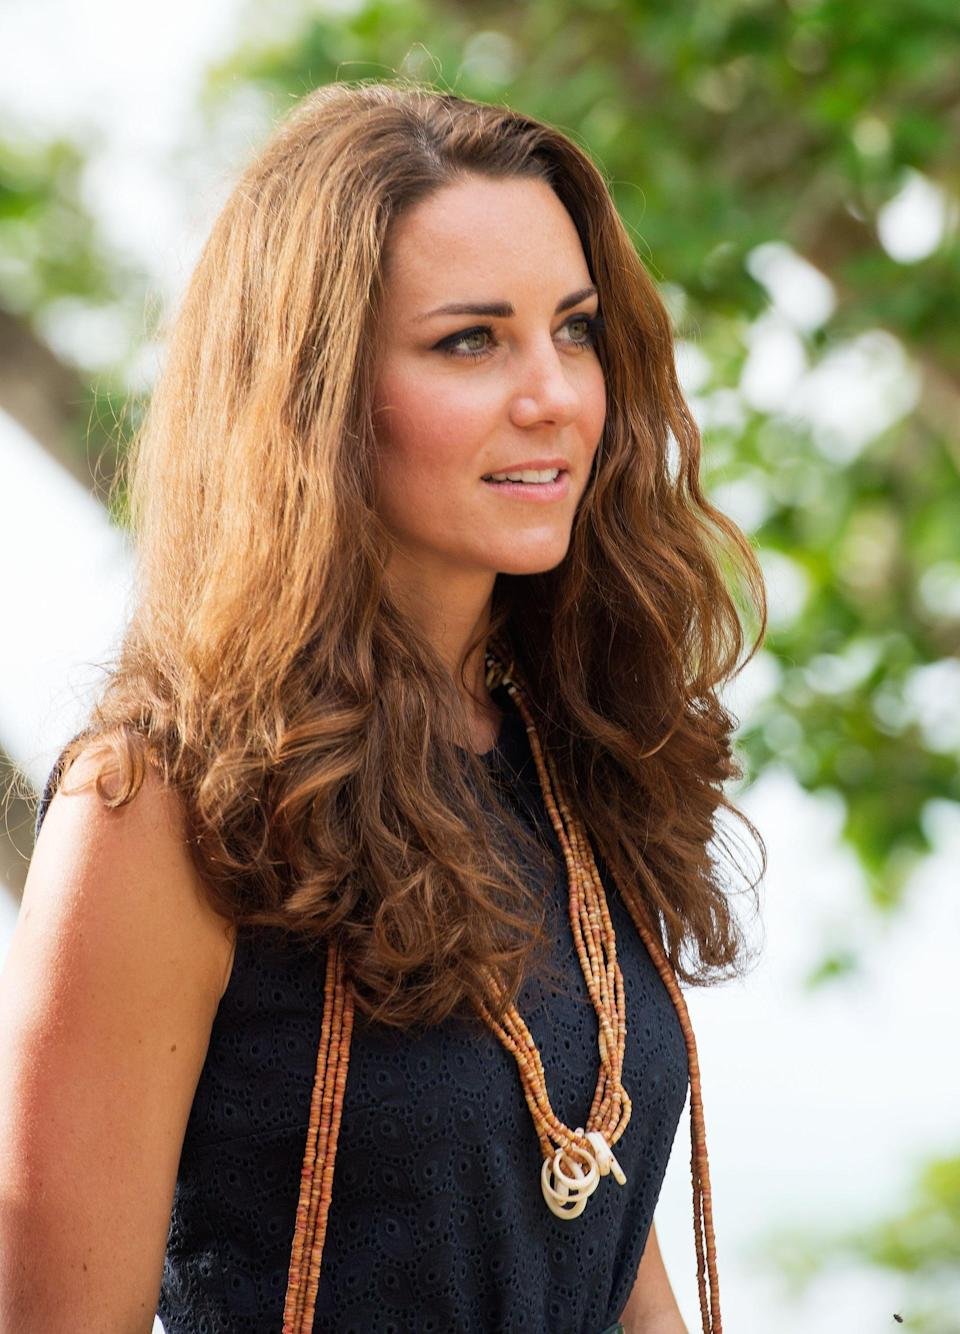 <p>Humidity doesn't stop the duchess's hair from looking great. She showed off her natural hair texture during a visit to Tuvanipupu Island, allowing us to see her fluffy waves and curls in all their glory. </p>